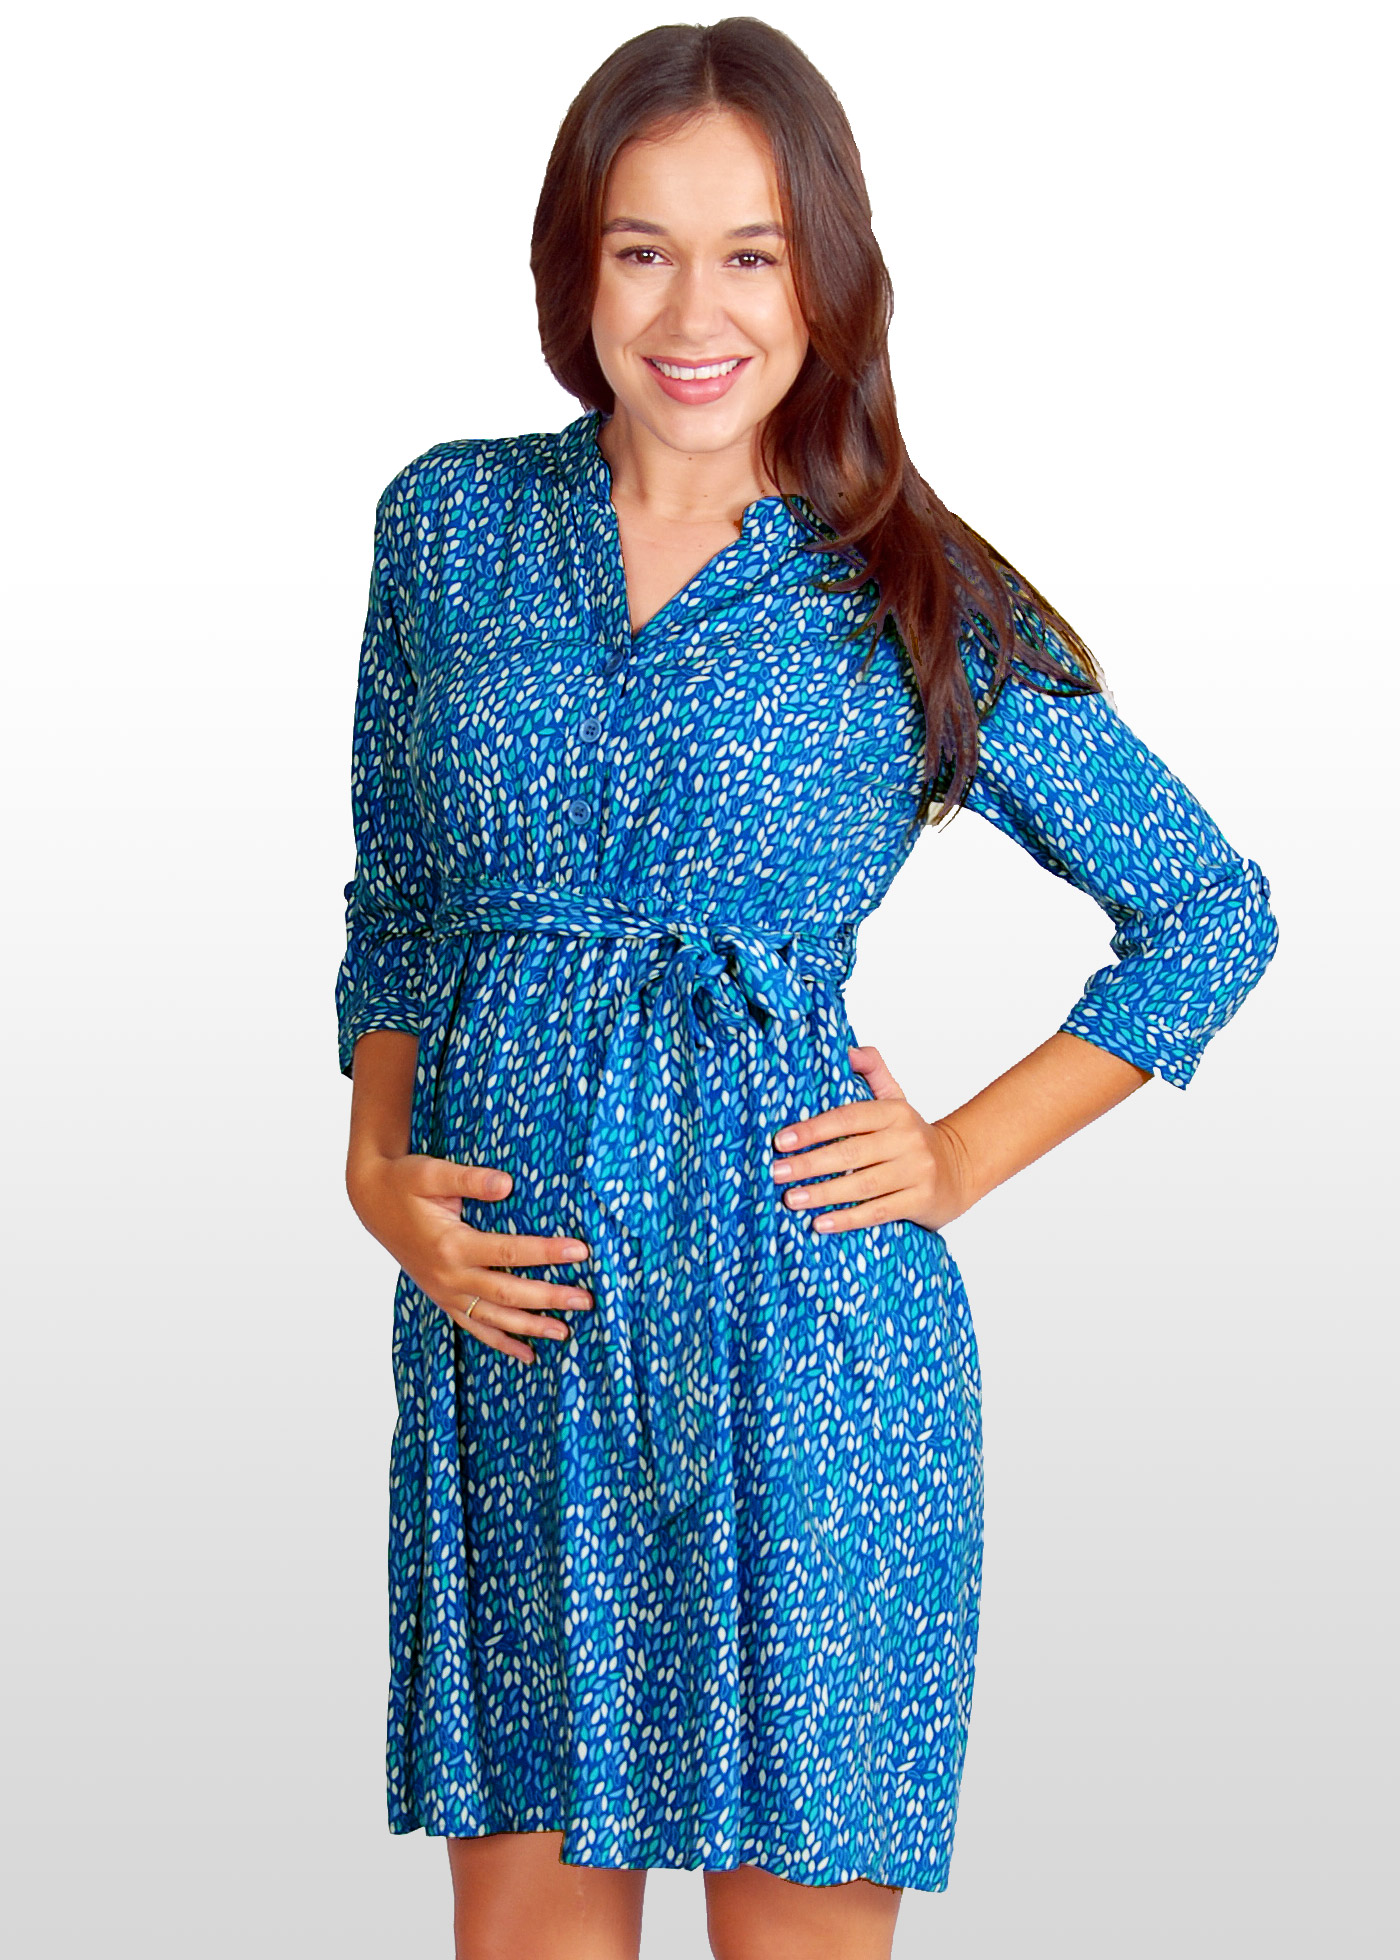 Leaf Print Maternity Shirt Dress is a great trans-seasonal piece - now just $59